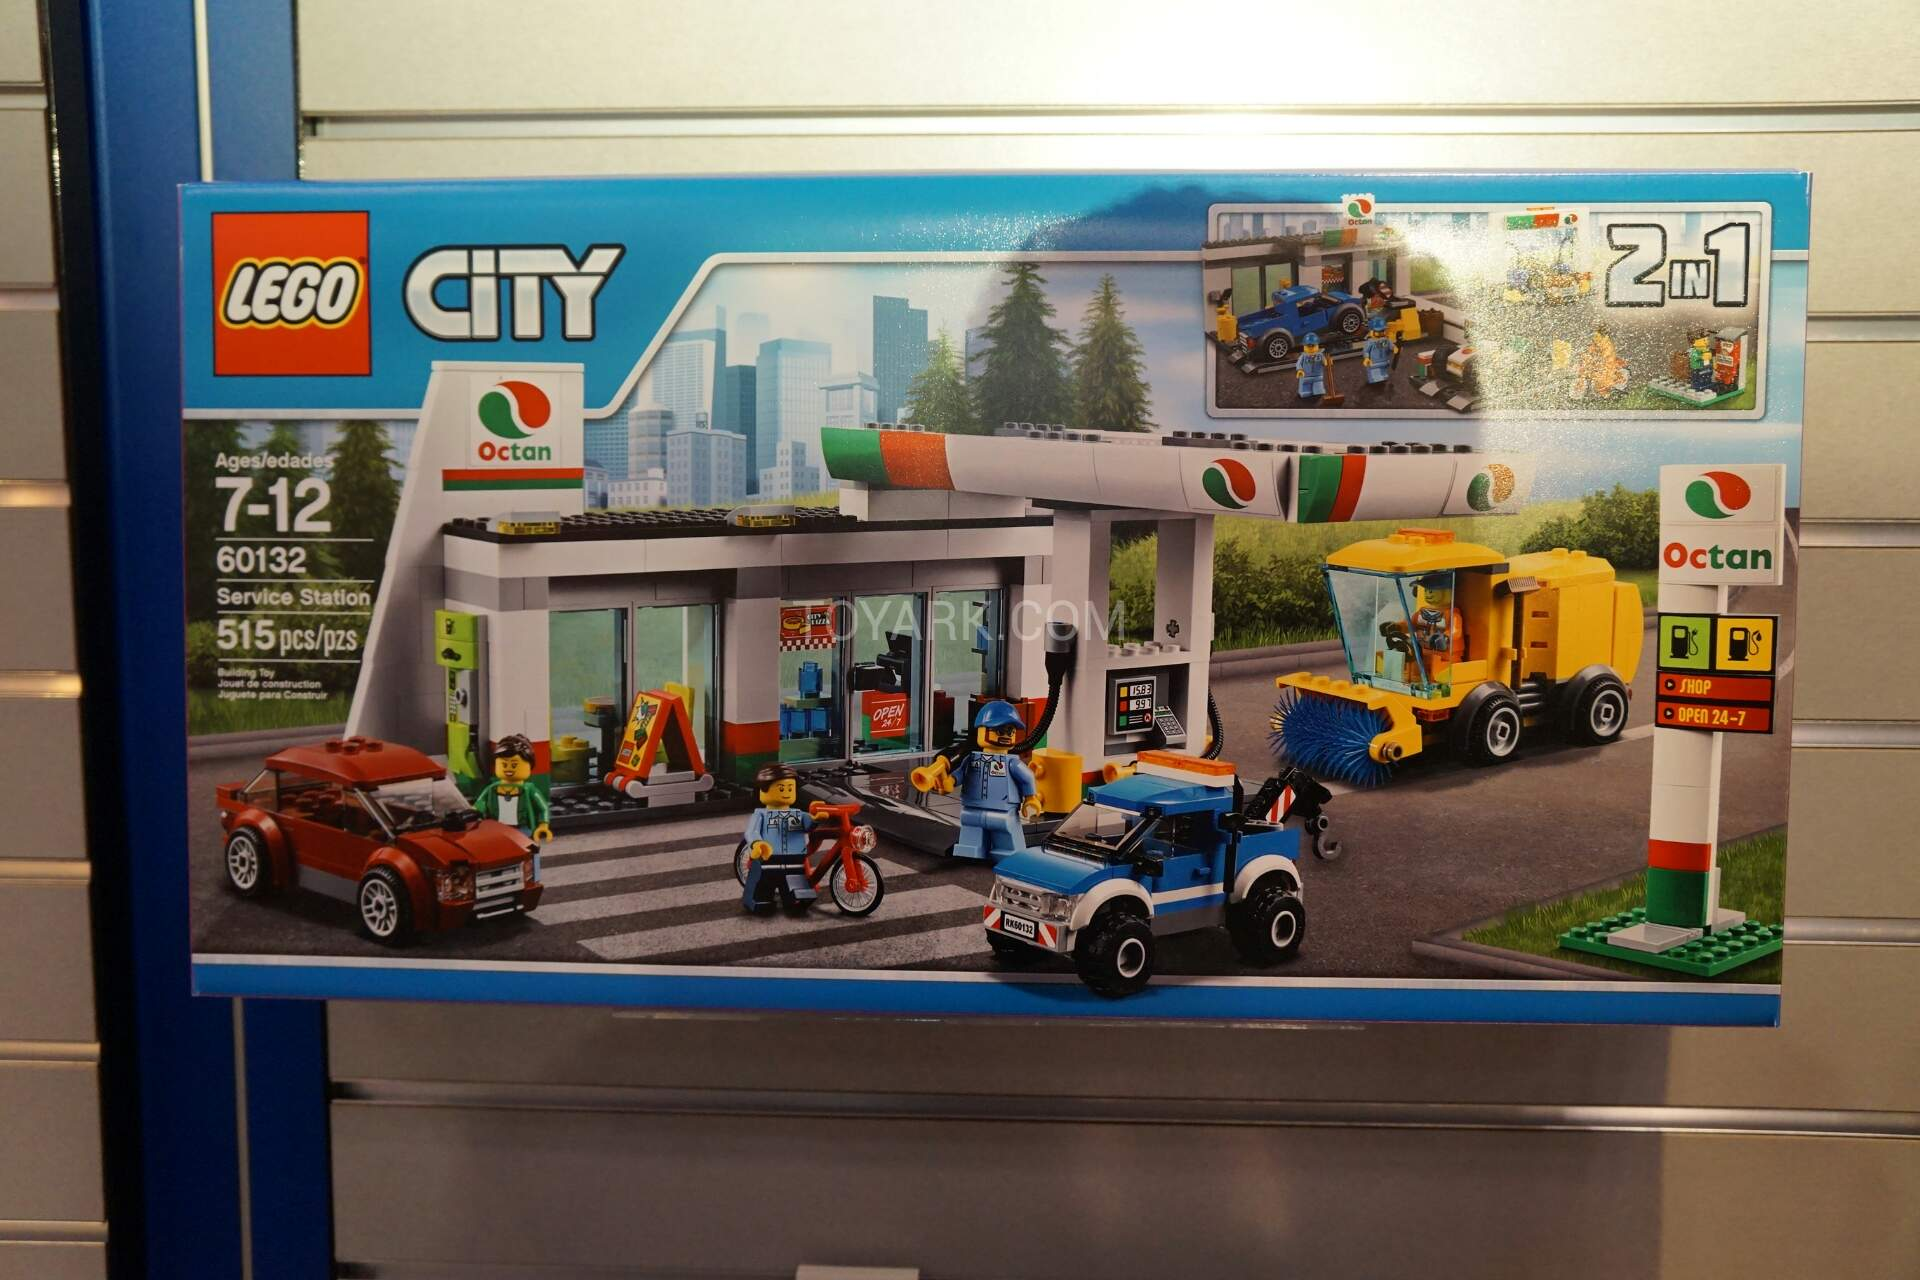 helicopter new york with New York Toy Fair Nouveautes Lego City 2016 on 432 Park Ave New York Citys Highest Apartment Goes Market 85 Million in addition Porsche 911 Gt3 as well New York City aerials furthermore Lego Jurassic World 2 Offizielles Bildmaterial Zu Drei Sets 43877 besides Br725.